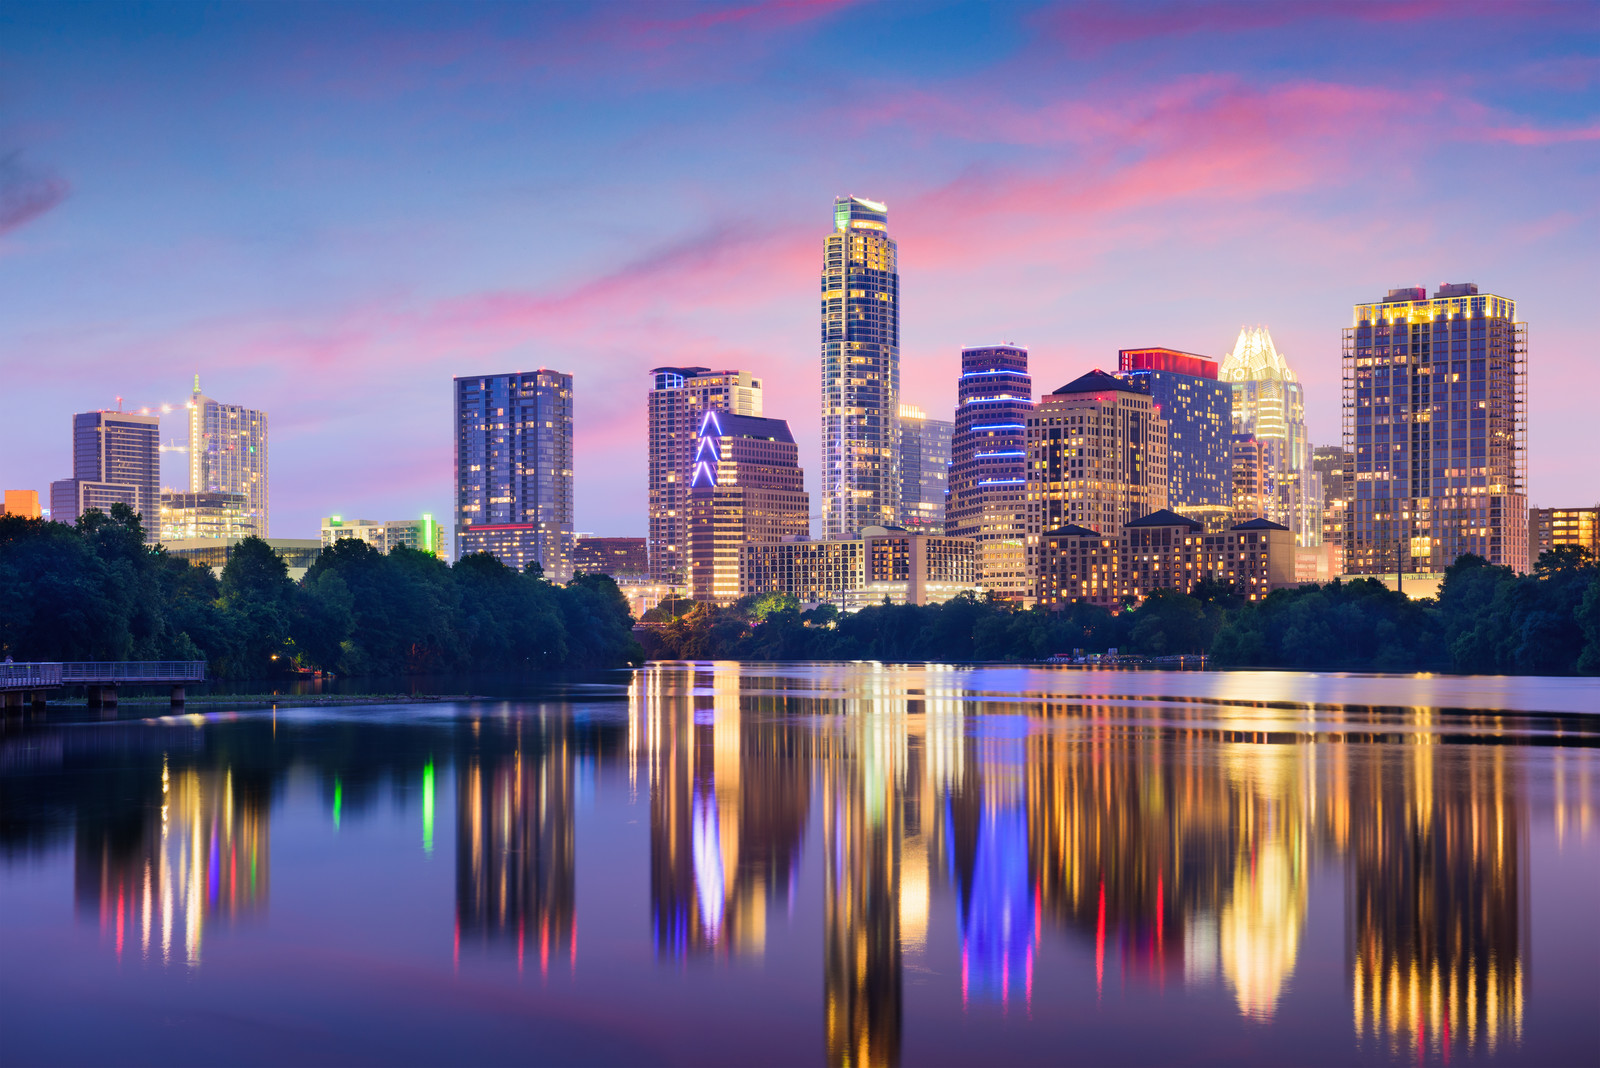 Evening skyline of Austin with the lights reflecting off the water